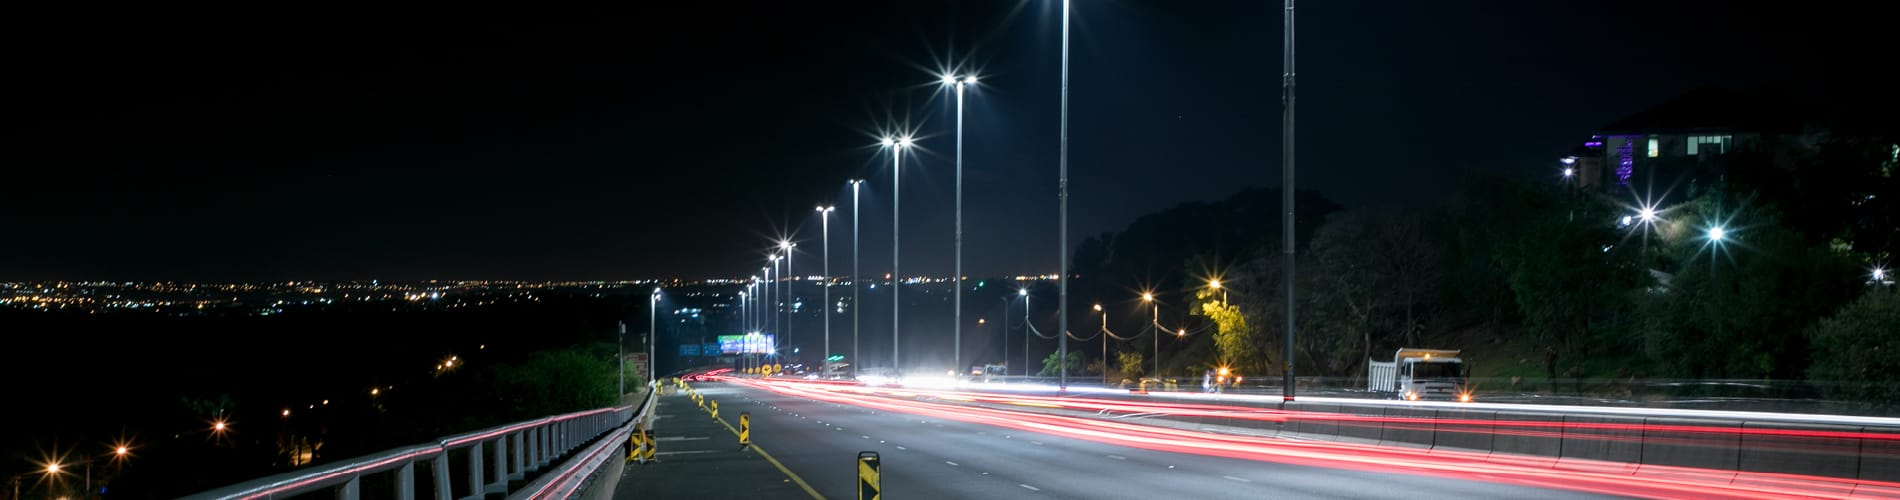 GenLux Lighting Roadway Highway Lights